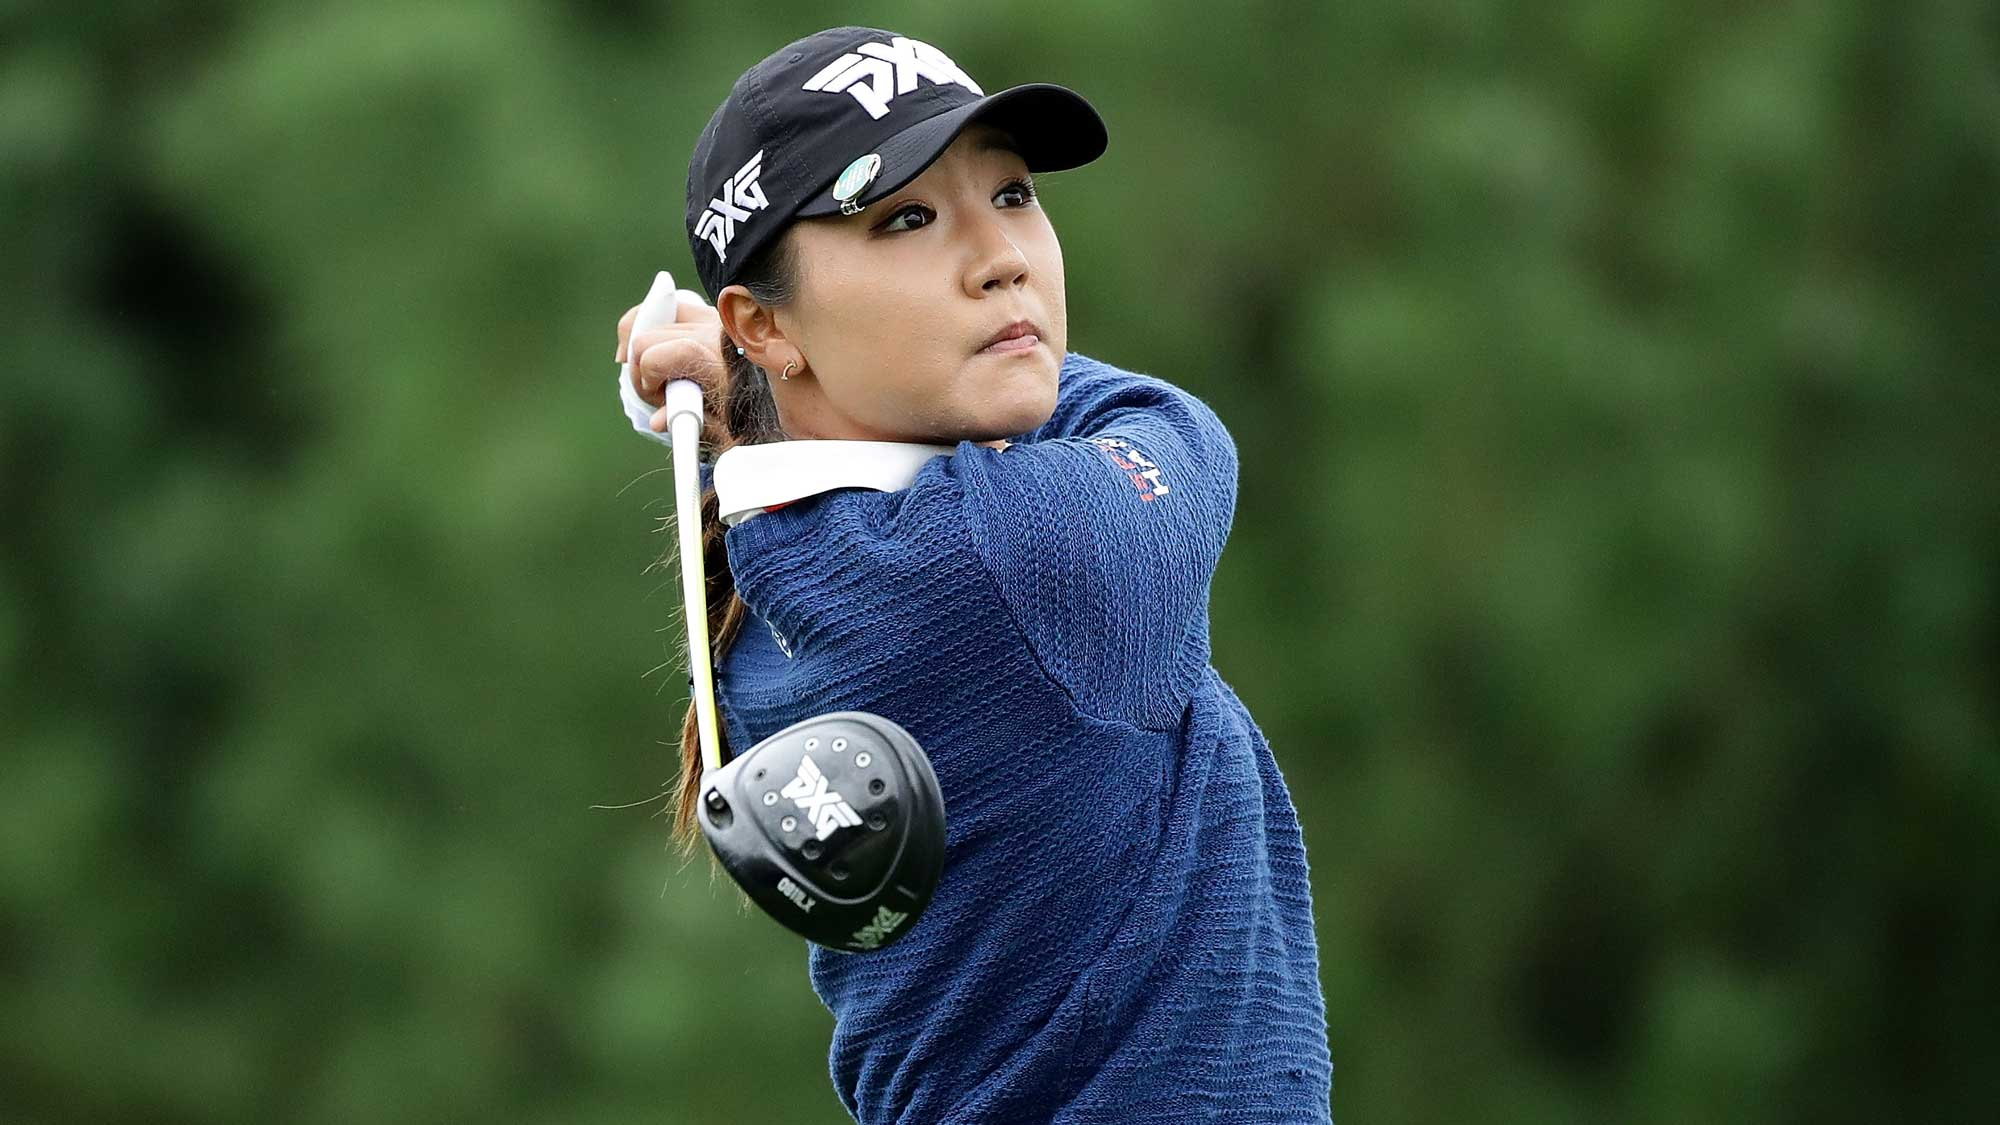 Lydia Ko of New Zealand plays a tee shot on the 2nd hole during the first round of the LPGA KEB Hana Bank Championship